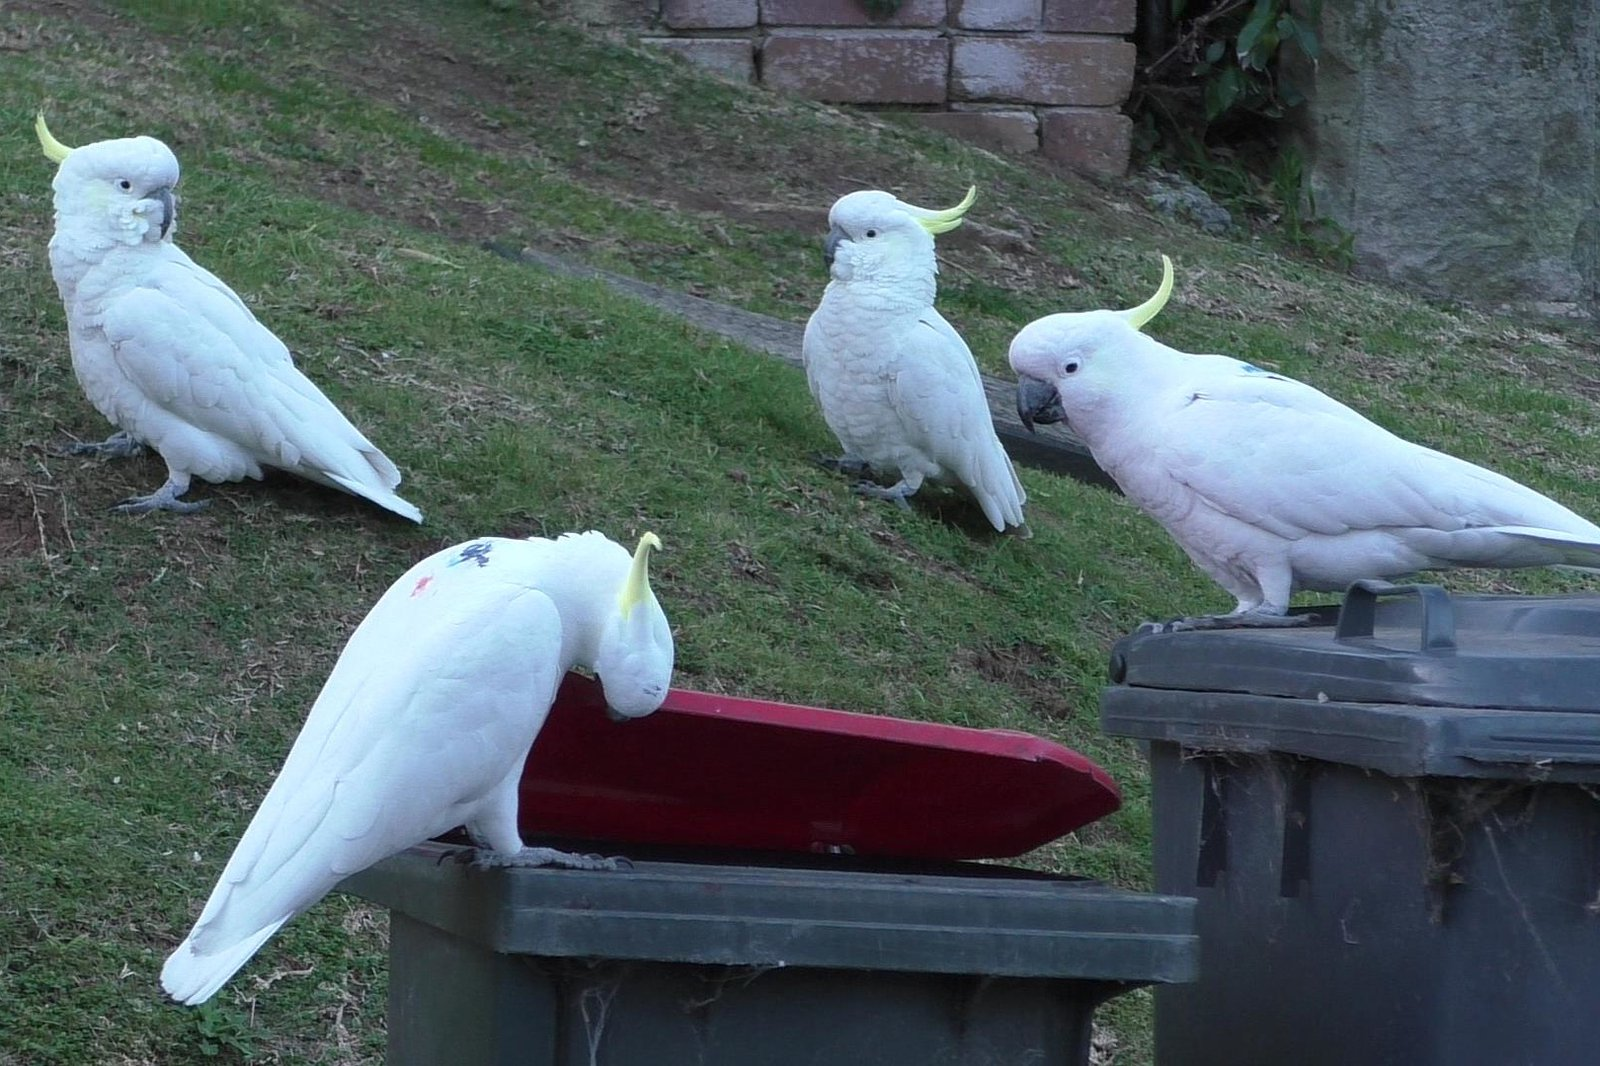 A color-marked sulphur-crested cockatoo lifting the lid of a household bins while several others watch it. The colored dots on the back allow researchers to identify individuals and disappear with the next molt.